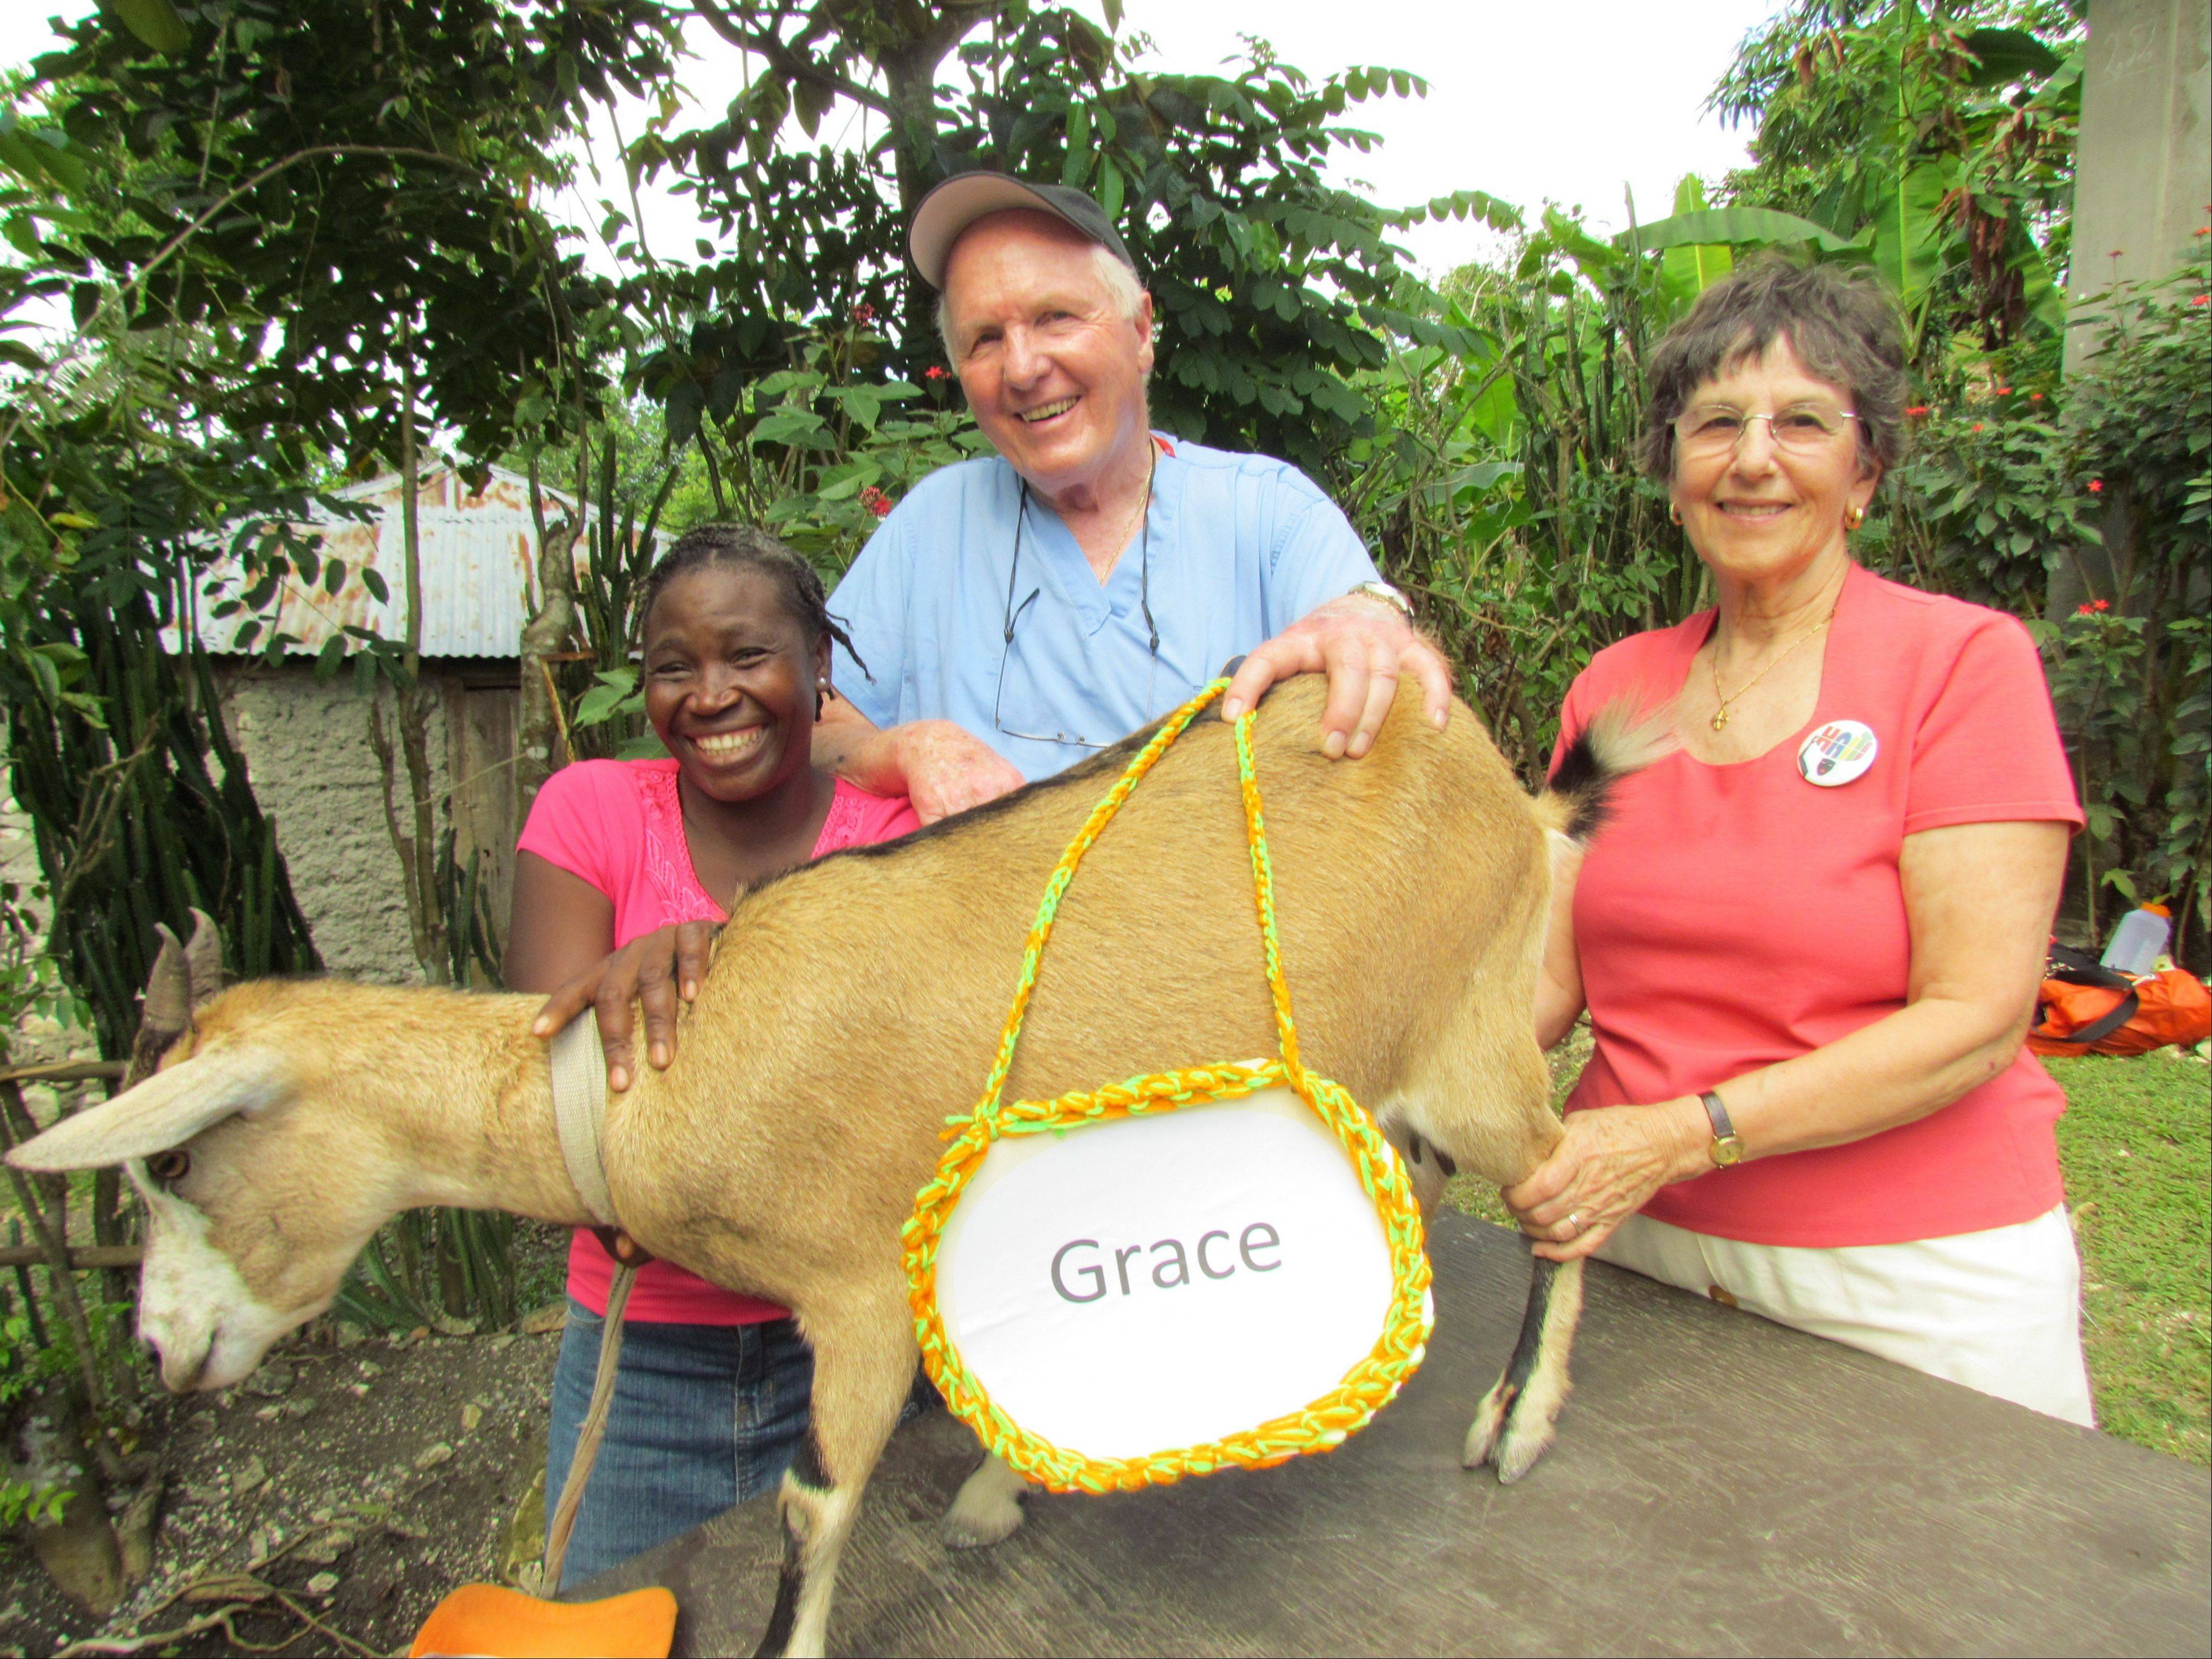 Dr. Jeremiah Lowney, center, started the Give a Goat program 11 years ago. Roughly 600 goats are distributed to rural families a year.